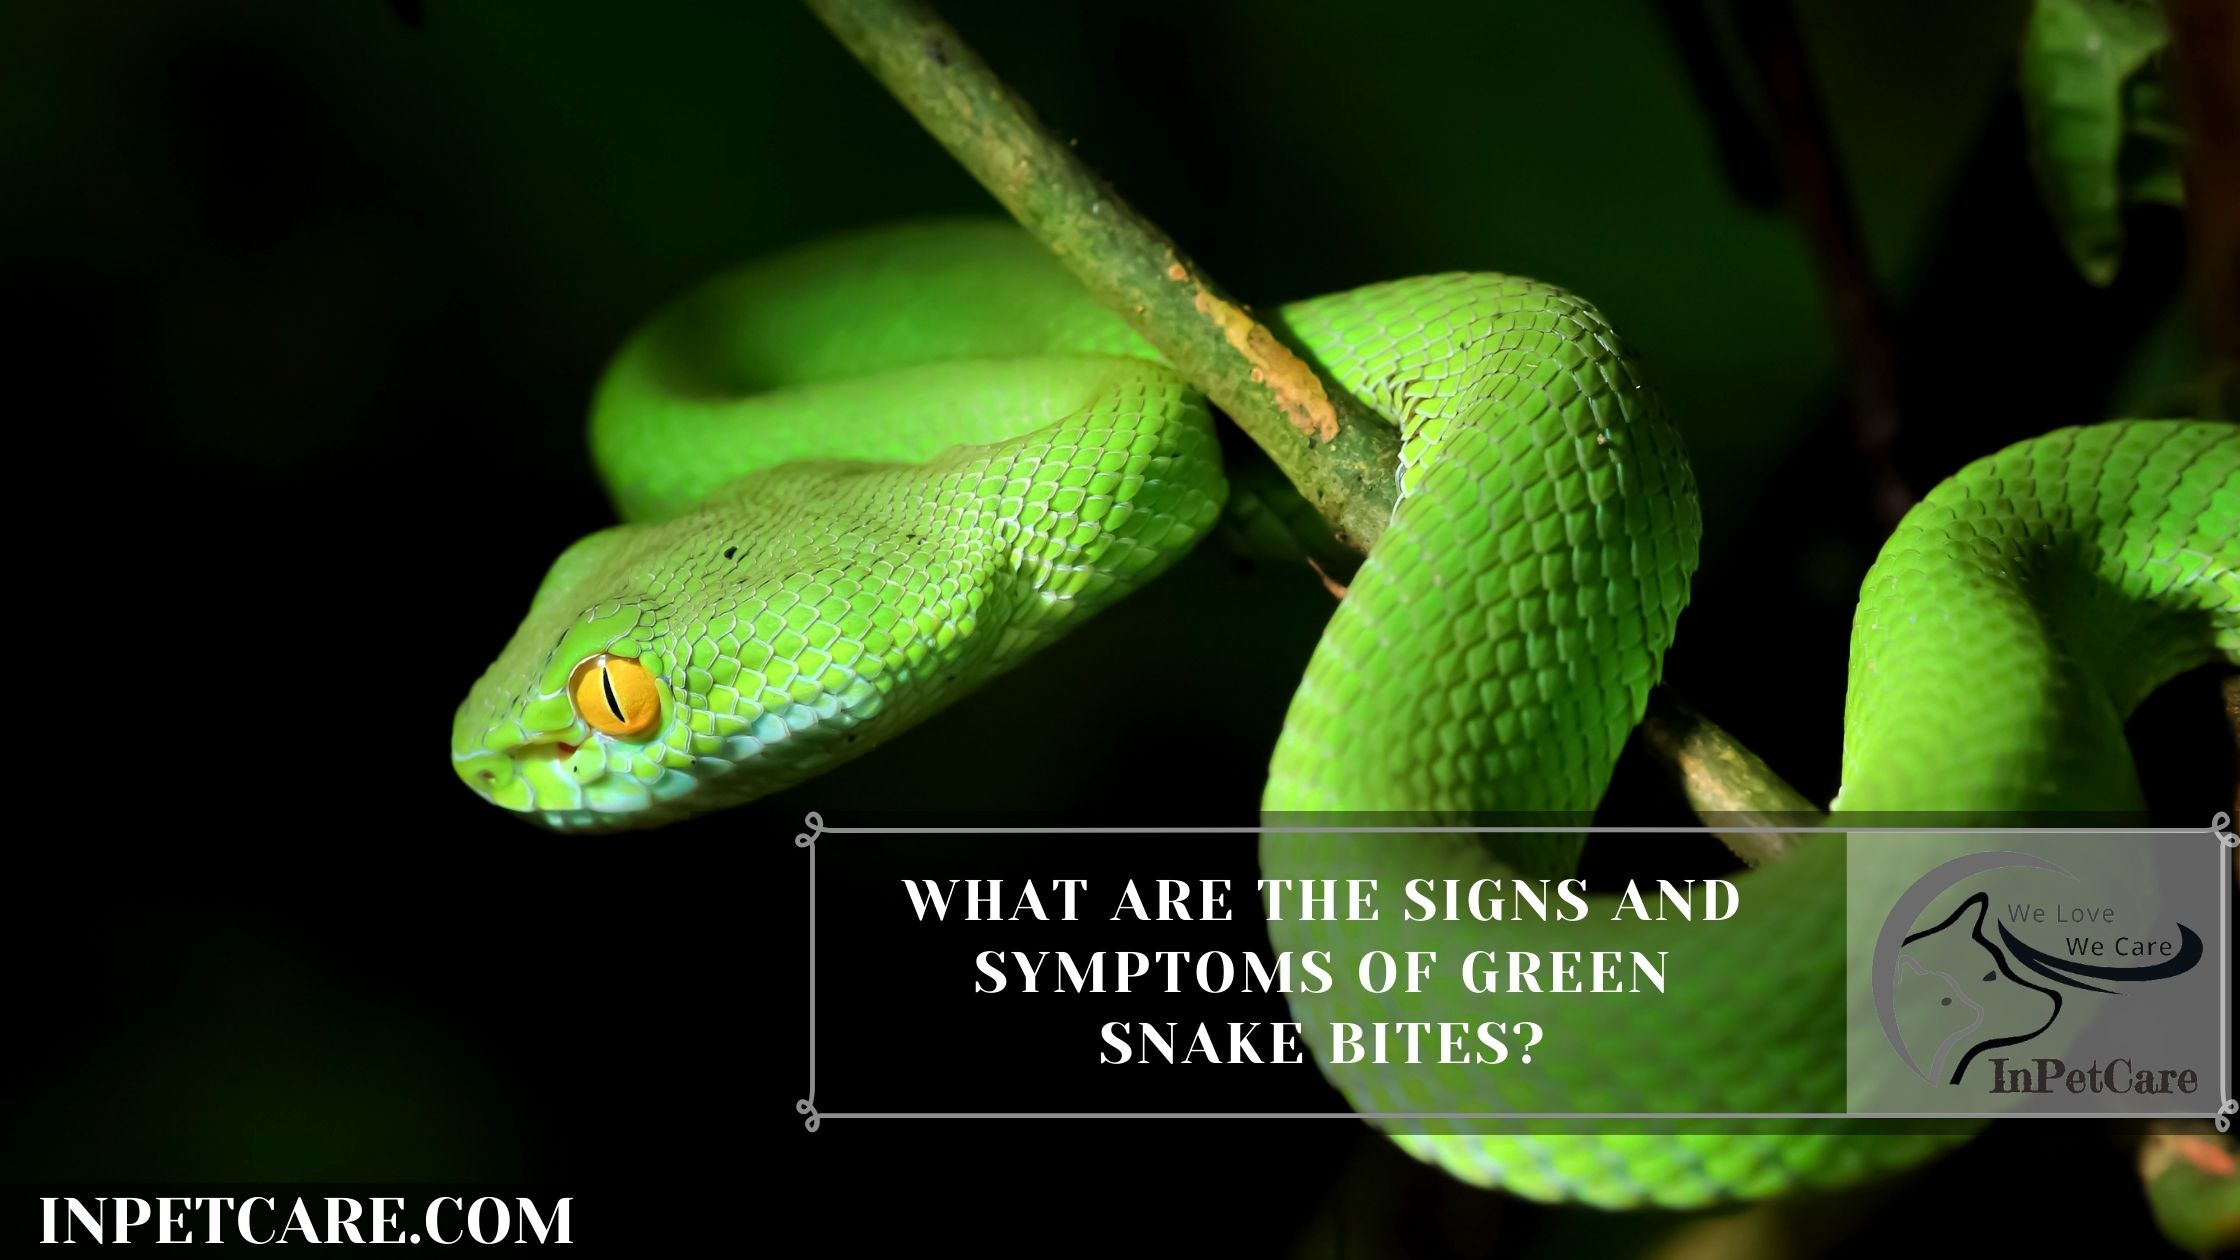 What are the signs and symptoms of green snake bites?